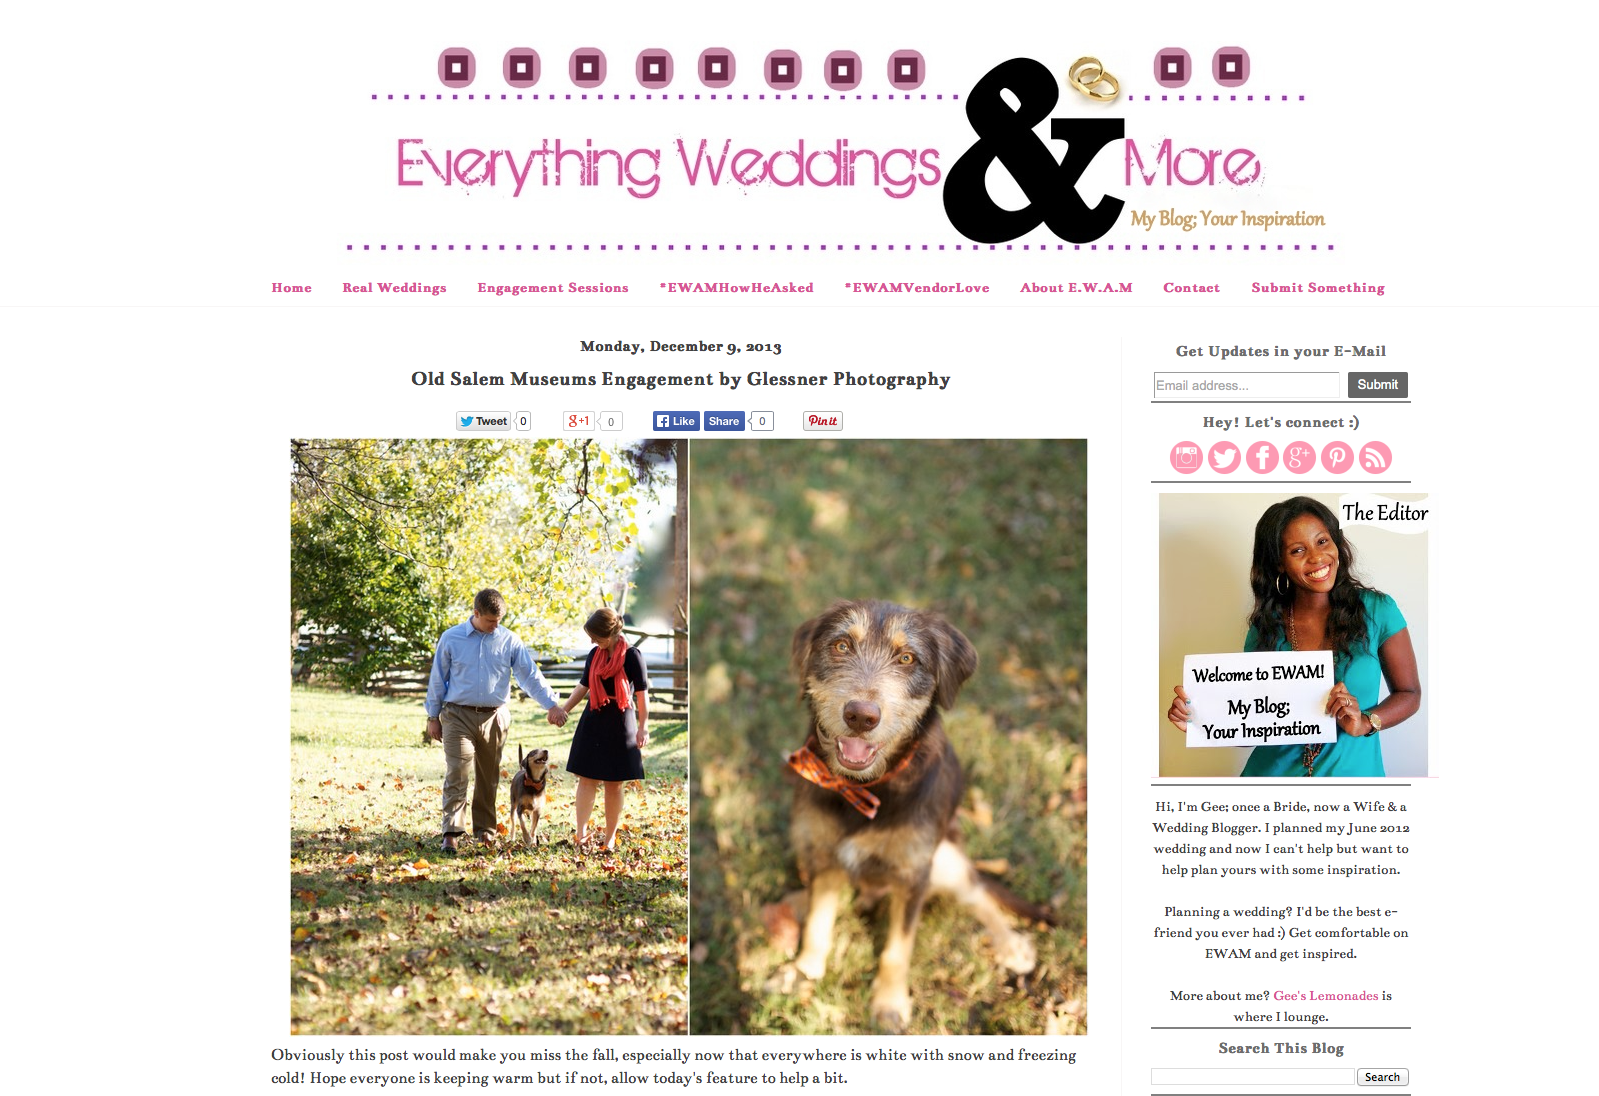 Christina Inman and Lucas Routh's Winston-Salem engagement session with their dog at Old Salem featured on Everything Weddings and More